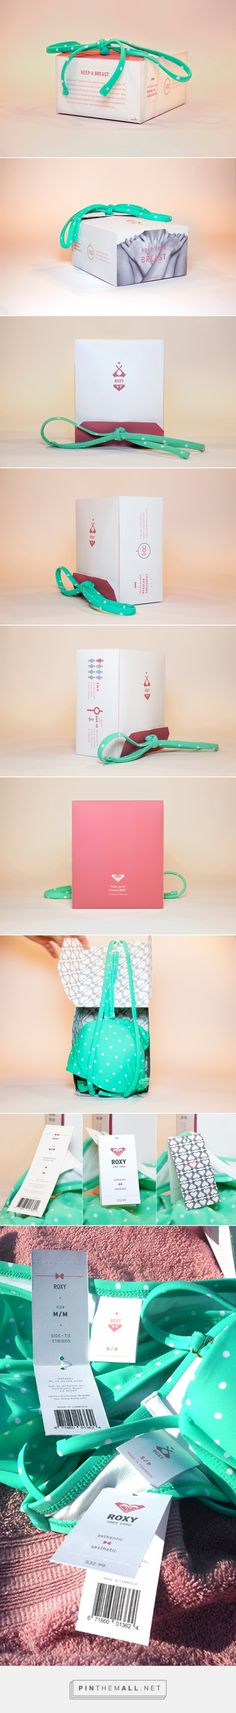 Roxy Promotional Package Design by Suji Kweon